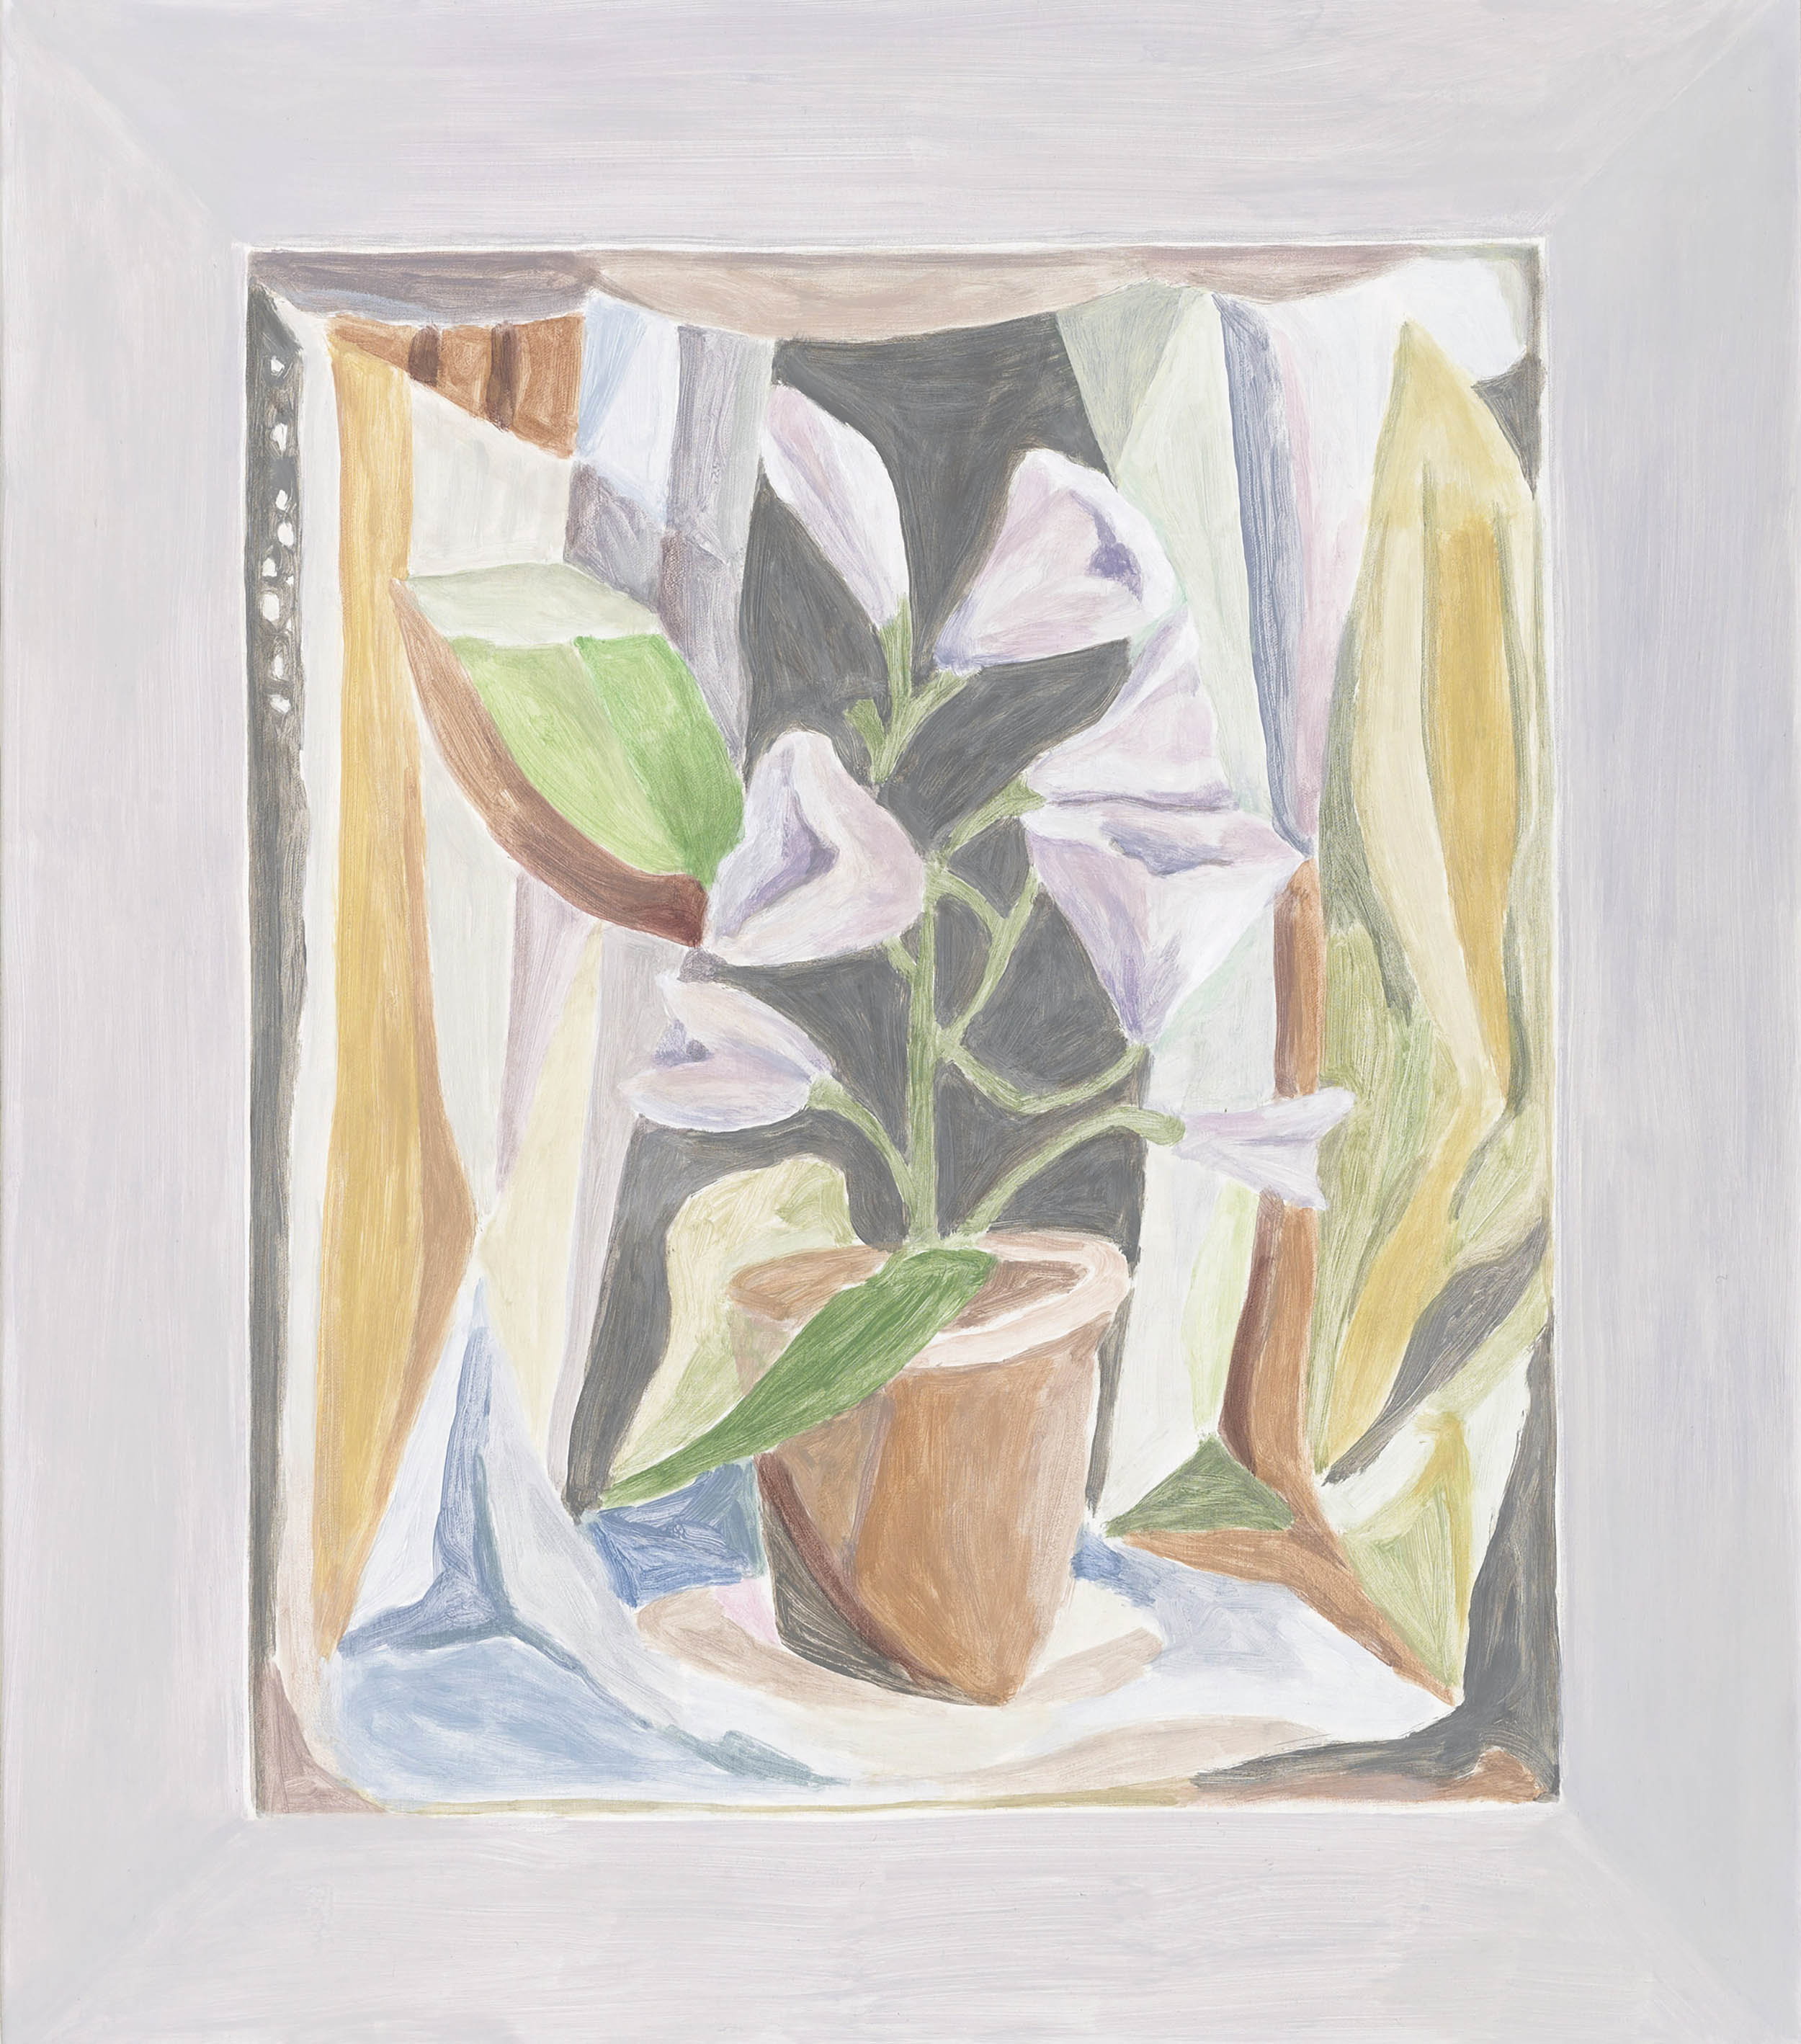 Framed Painting: Cubistic Still Life, acrylic on canvas over board, 28 1/2 x 25 inches, 2011.   X2016.10,  Permanent.Collection, 2016.  Paintings of Paintings , Talley Dunn Gallery, 2012.